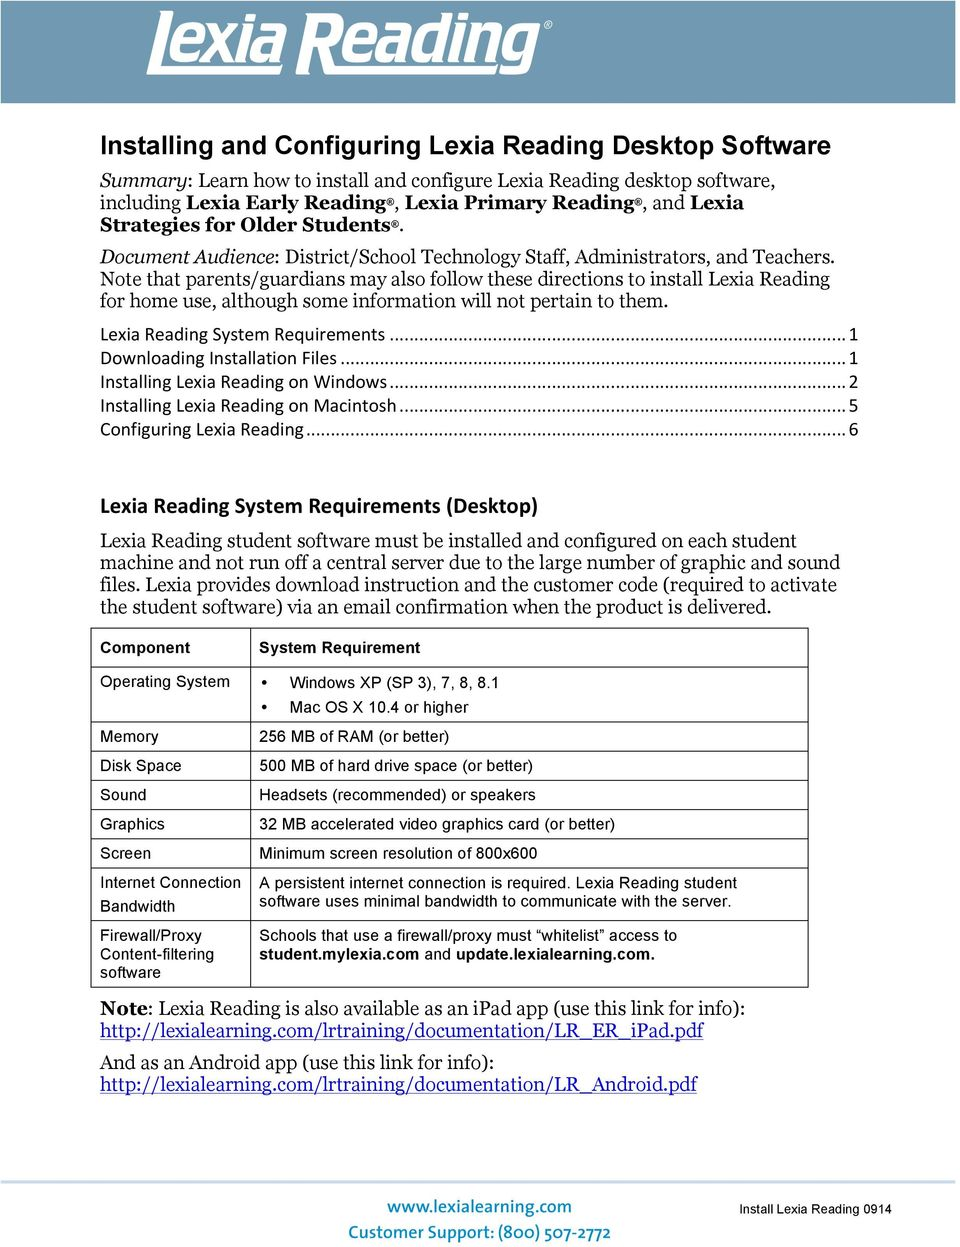 Note that parents/guardians may also follow these directions to install Lexia Reading for home use, although some information will not pertain to them. Lexia Reading System Requirements.